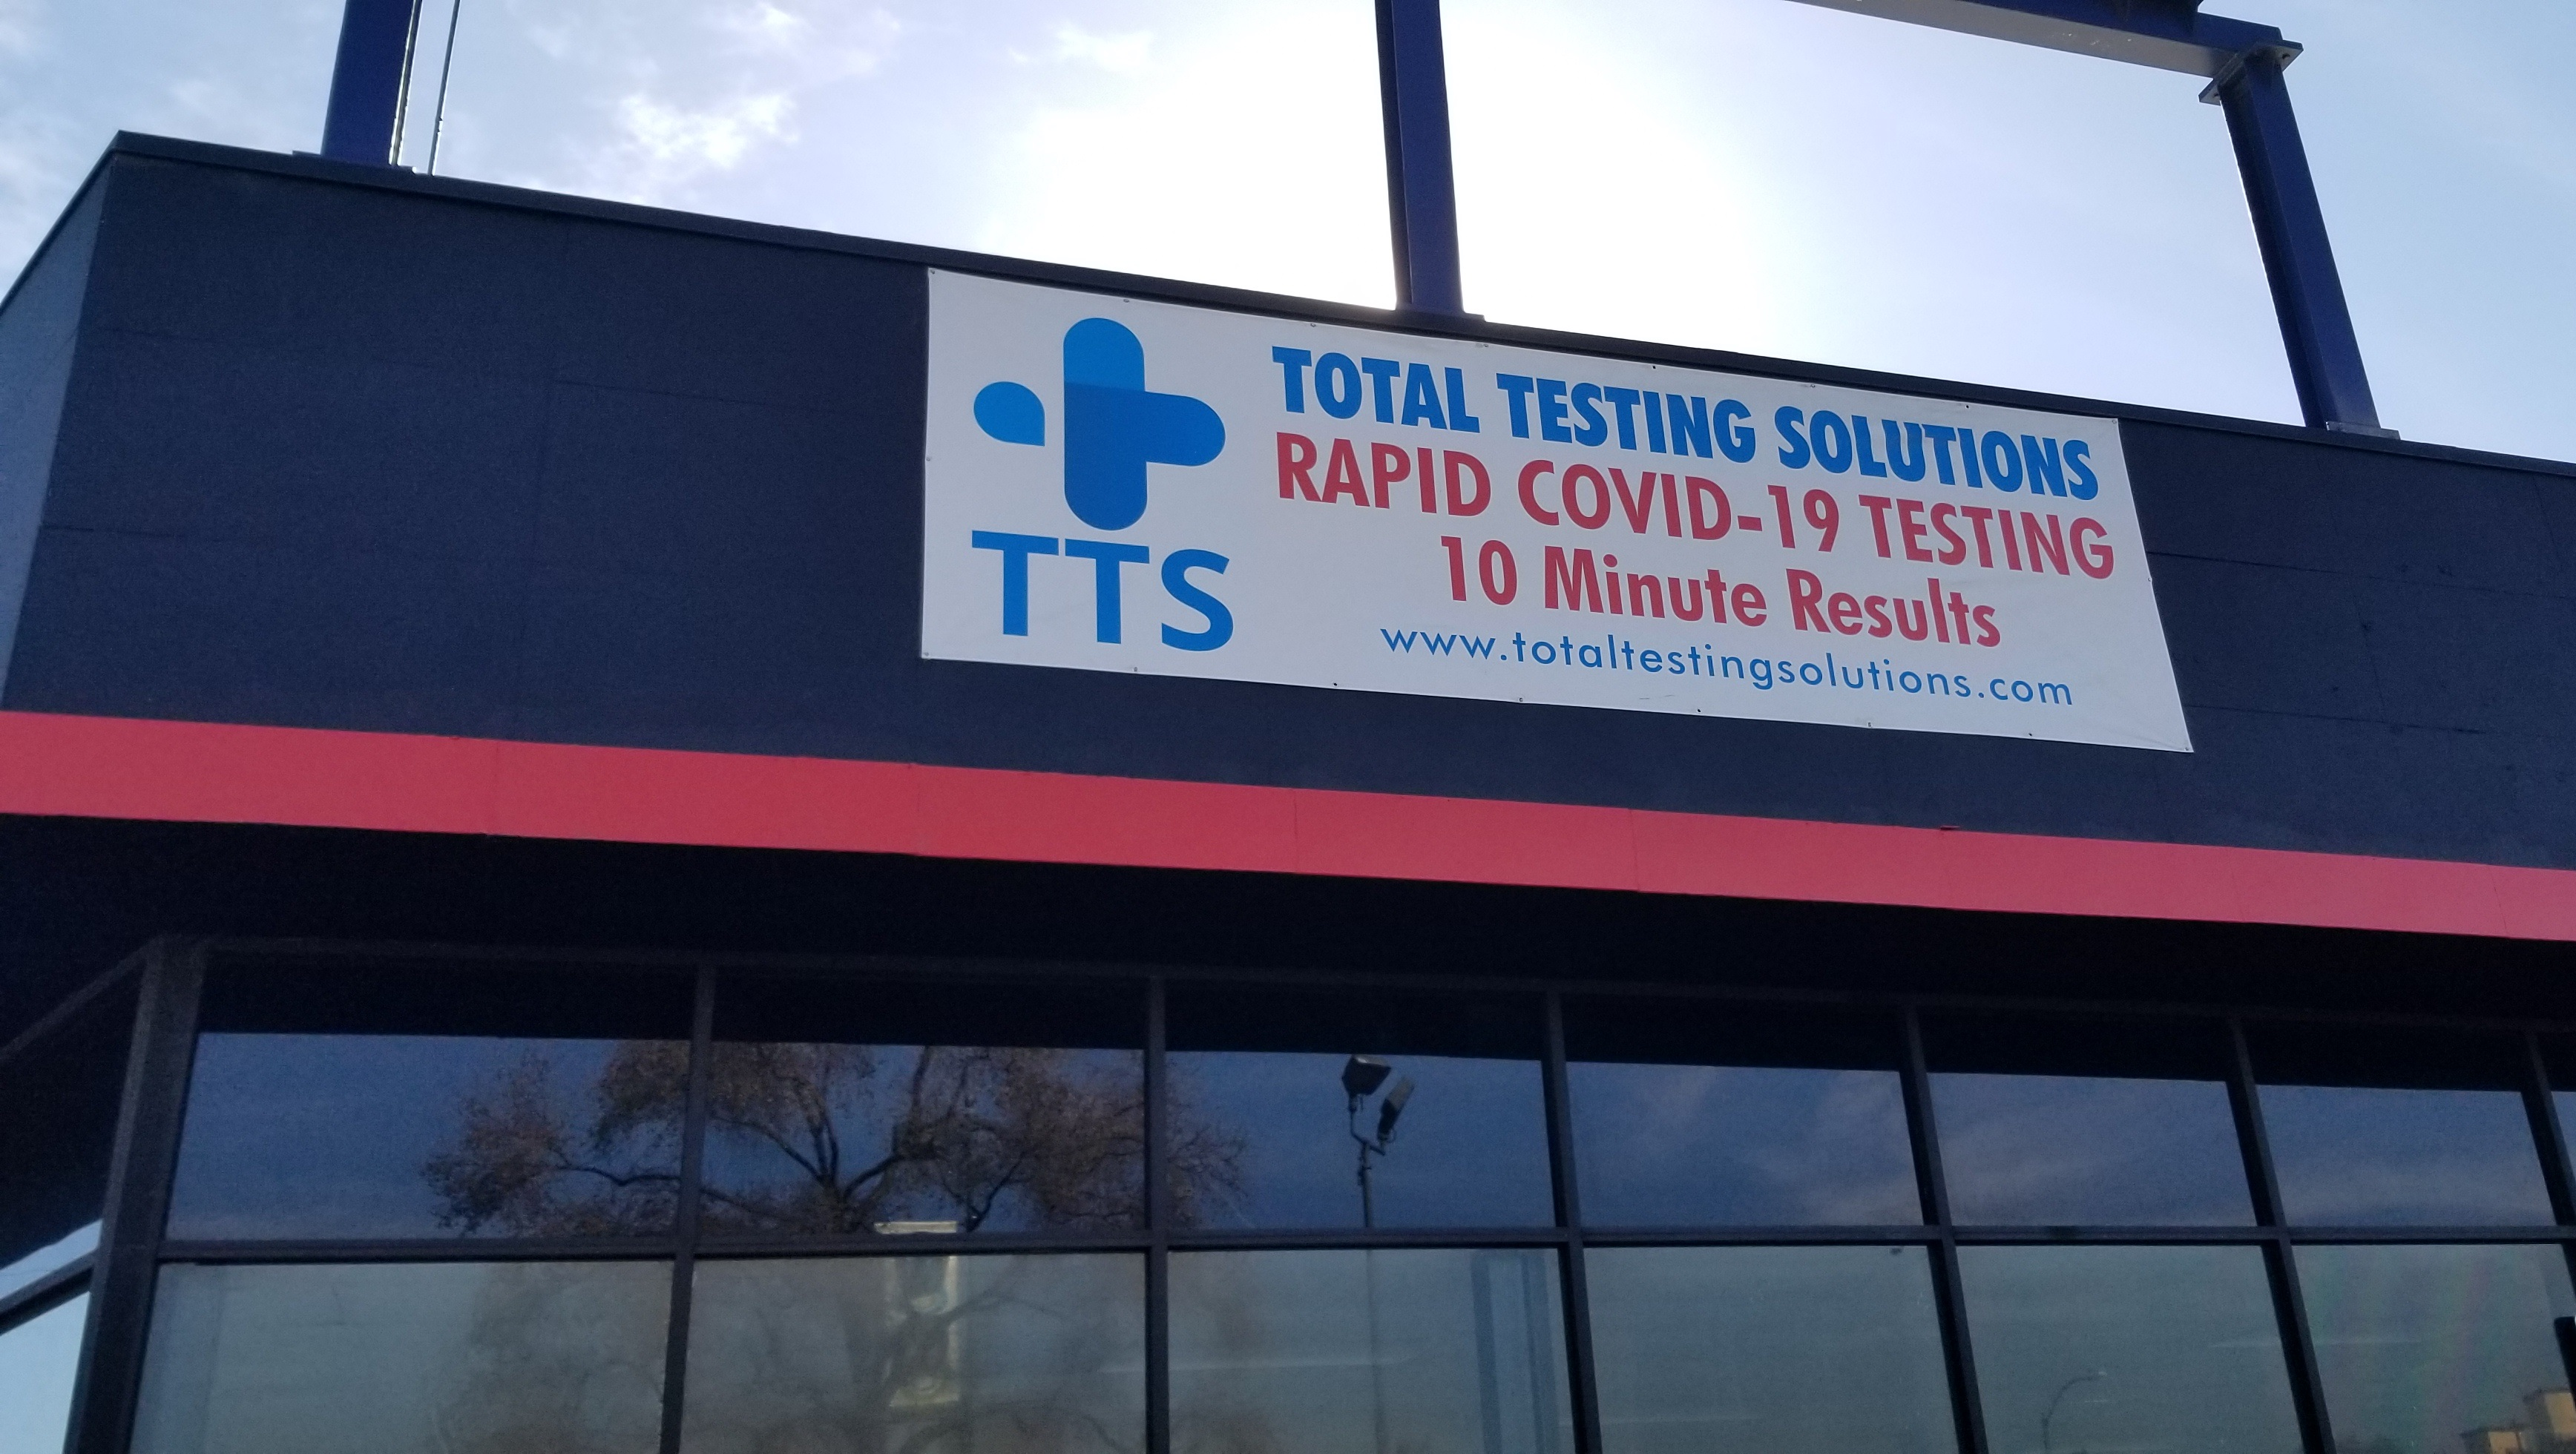 Clinics and facilities can boost visibility with testing center banners, people can see what is being offered and will be encouraged to drop in for a test.